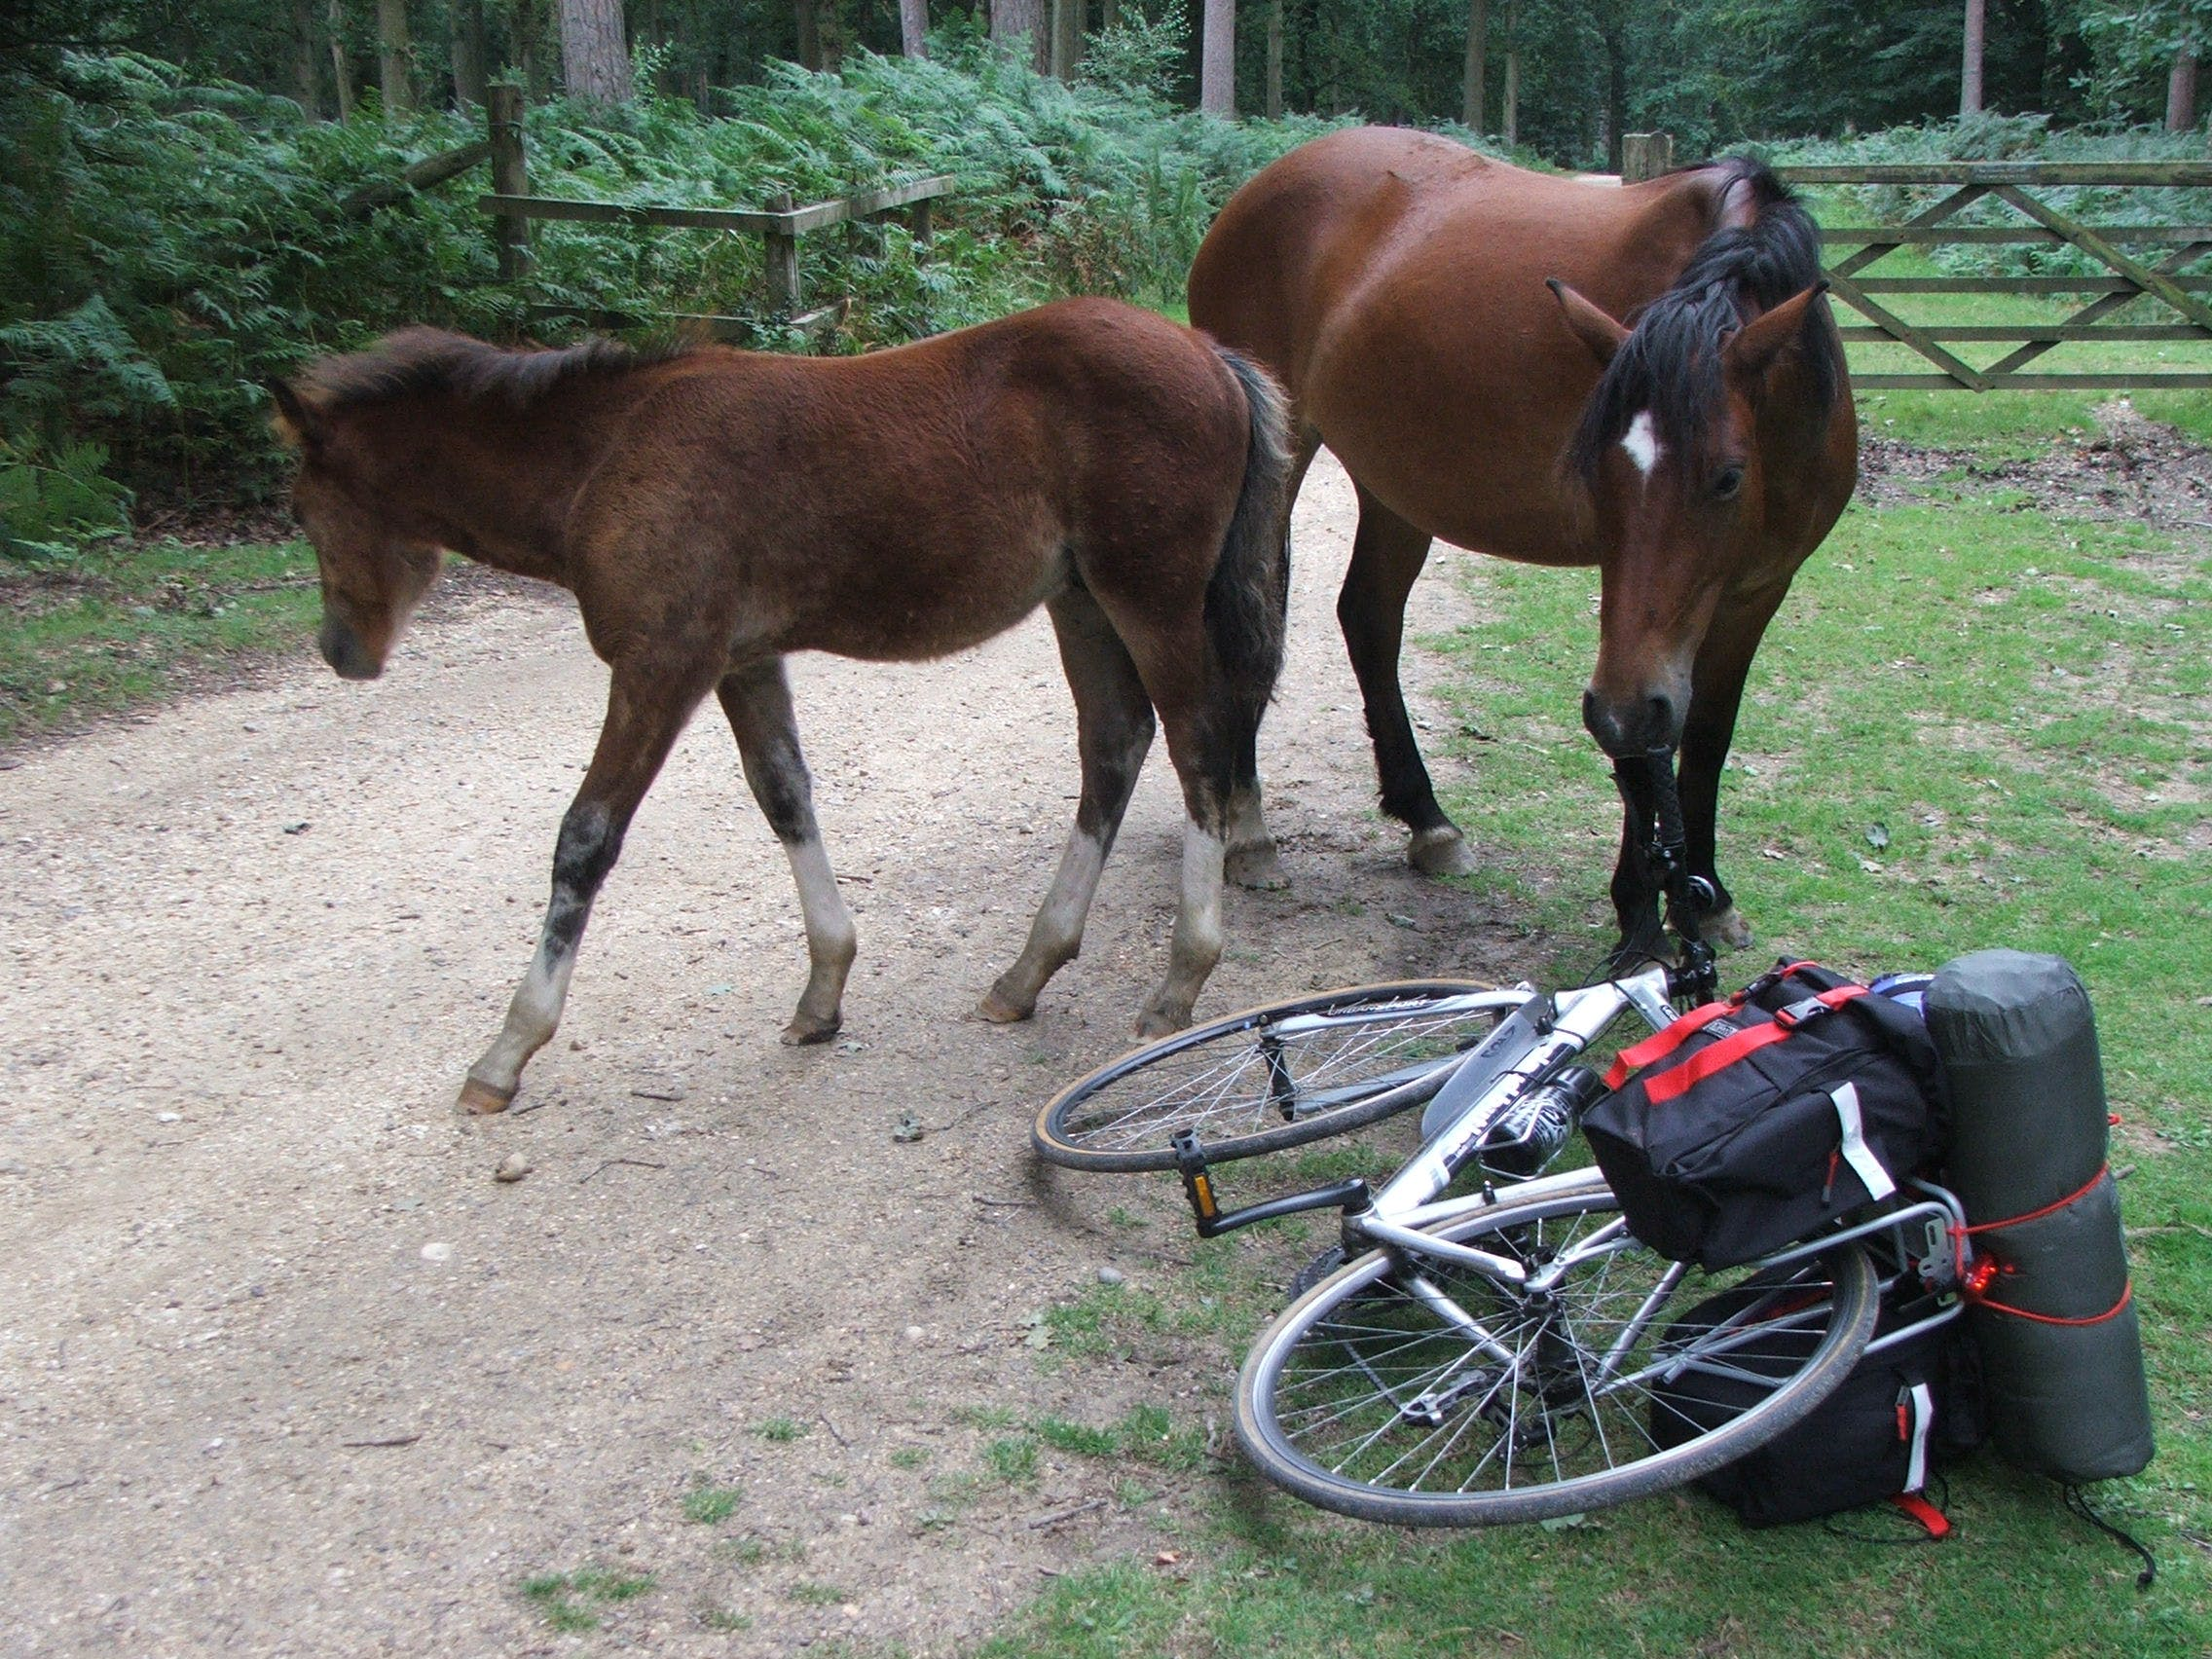 Free stock photo of bicycle, explore, mare and foal, pony